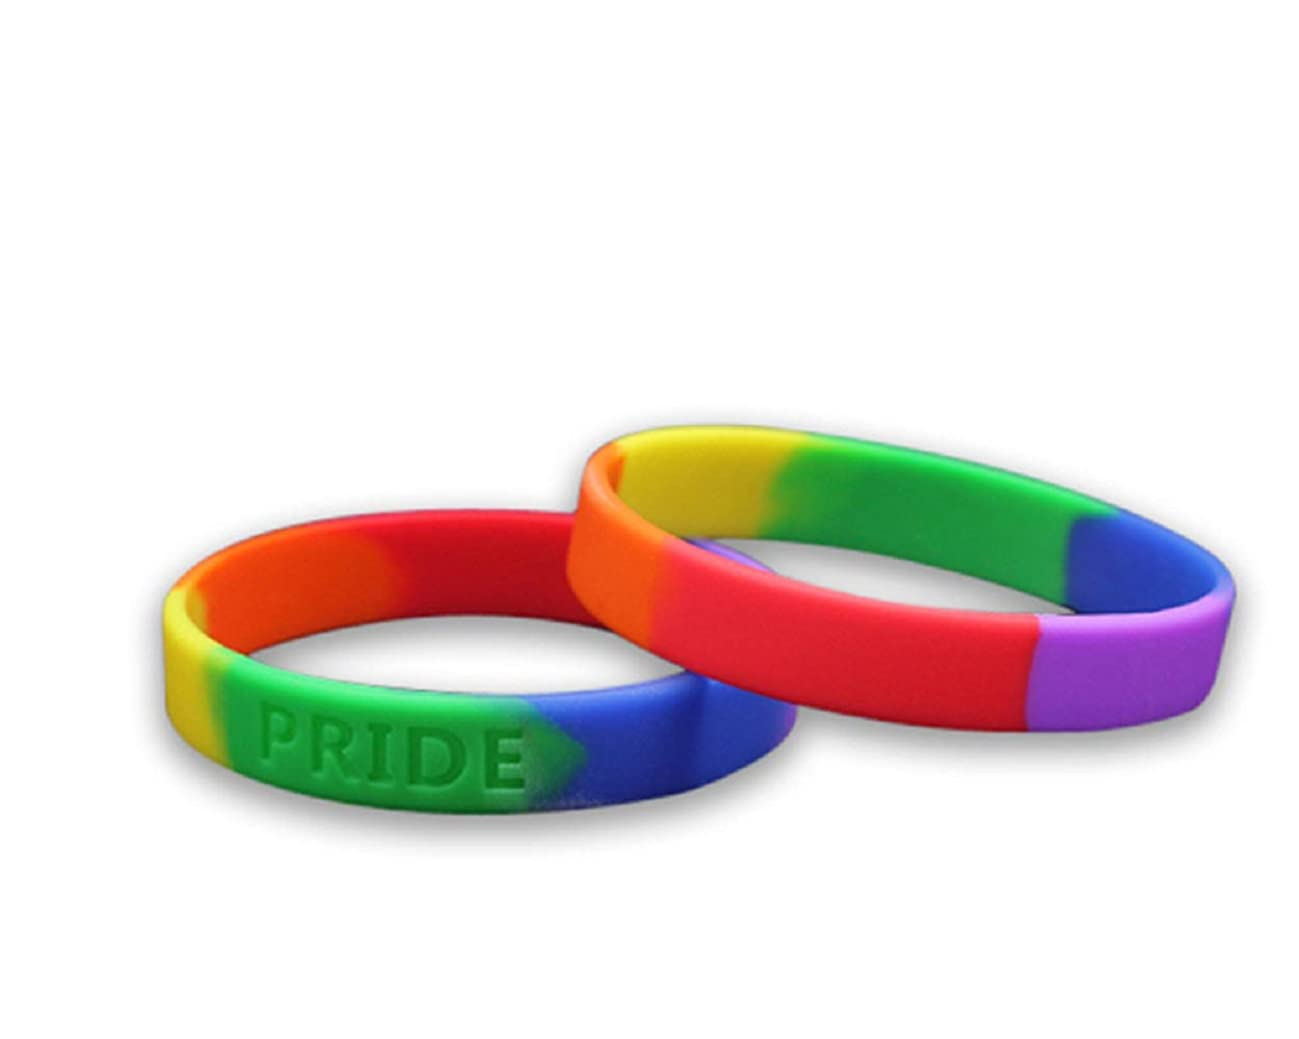 50 Pack Gay Pride Rainbow Silicone Bracelets - Adult Size - Support LGBTQ Cause (50 Bracelets)